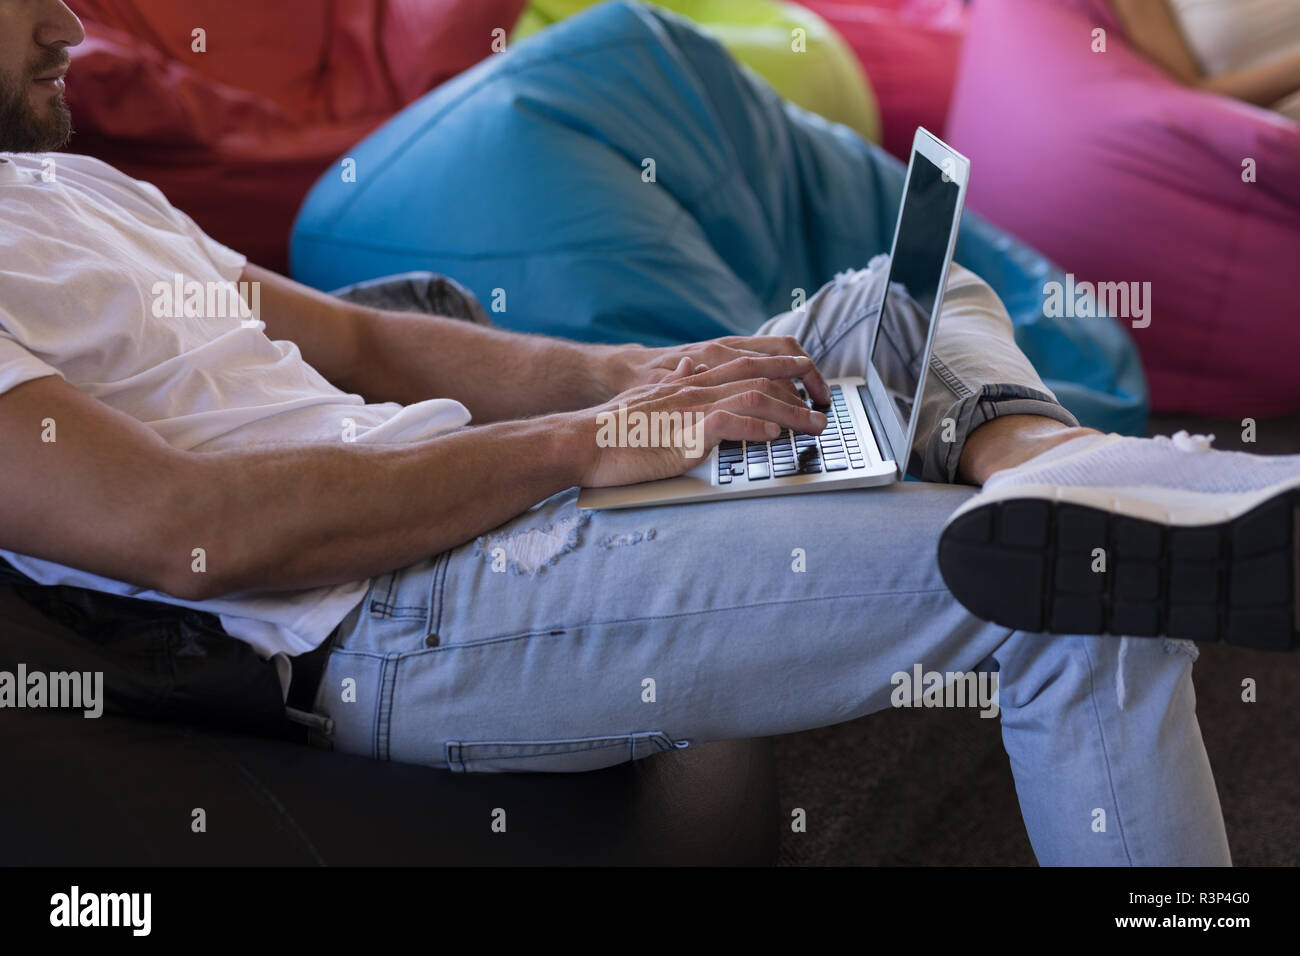 Business executive using laptop while sitting on bean bag - Stock Image